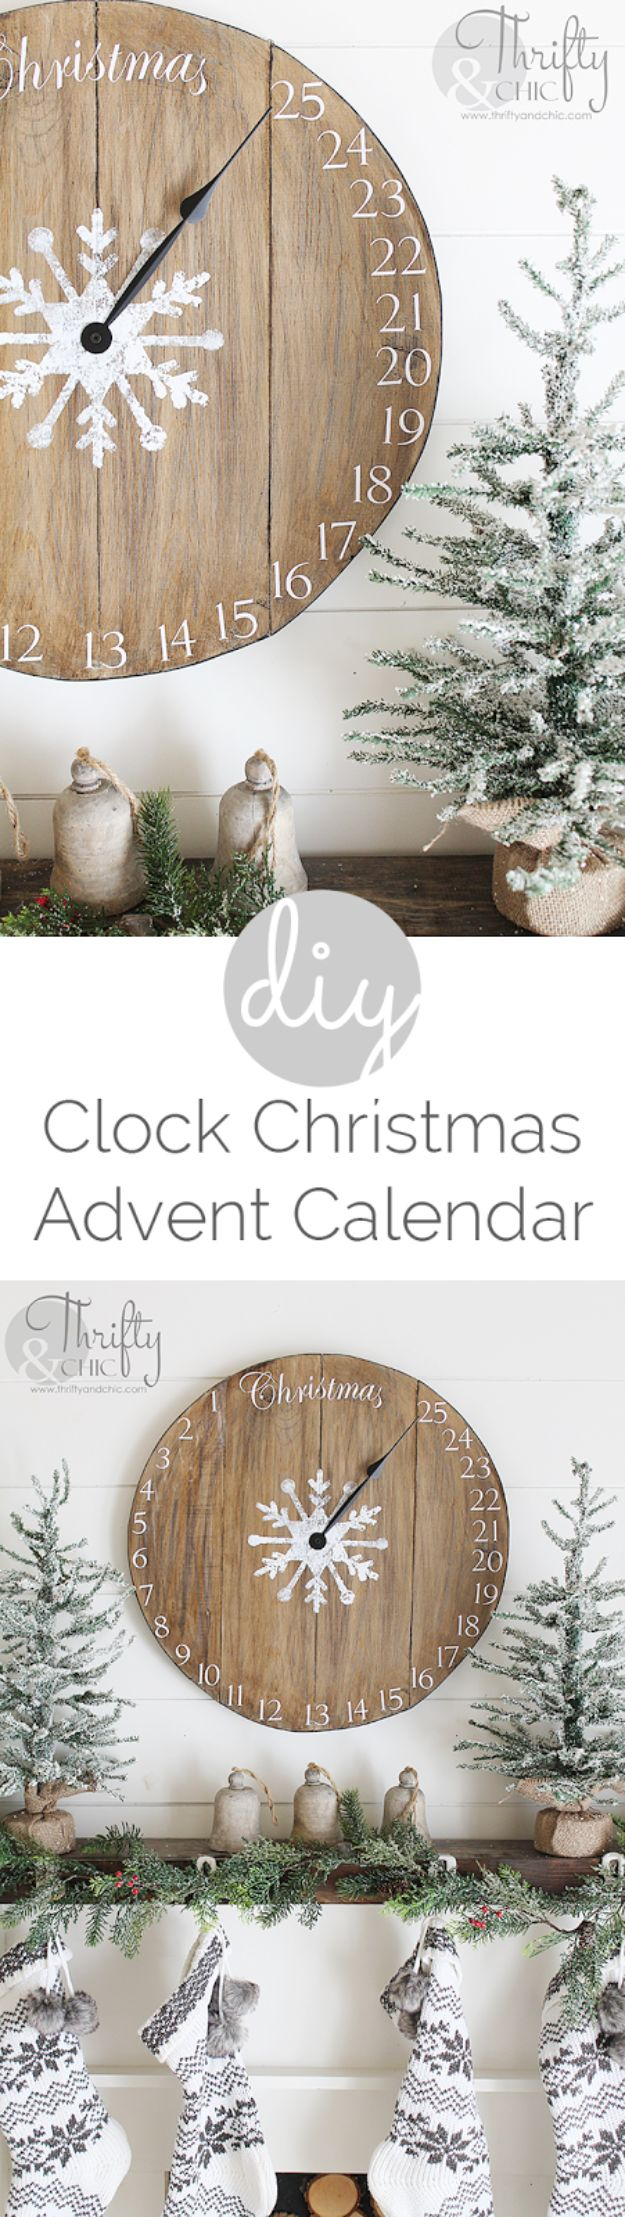 Cheap DIY Christmas Decor Ideas and Holiday Decorating On A Budget - DIY Wood Clock Christmas Advent Calendar - Easy and Quick Decorating Ideas for The Holidays - Cool Dollar Store Crafts for Xmas Decorating On A Budget - wreaths, ornaments, bows, mantel decor, front door, tree and table centerpieces - best ideas for beautiful home decor during the holidays http://diyjoy.com/cheap-diy-christmas-decor